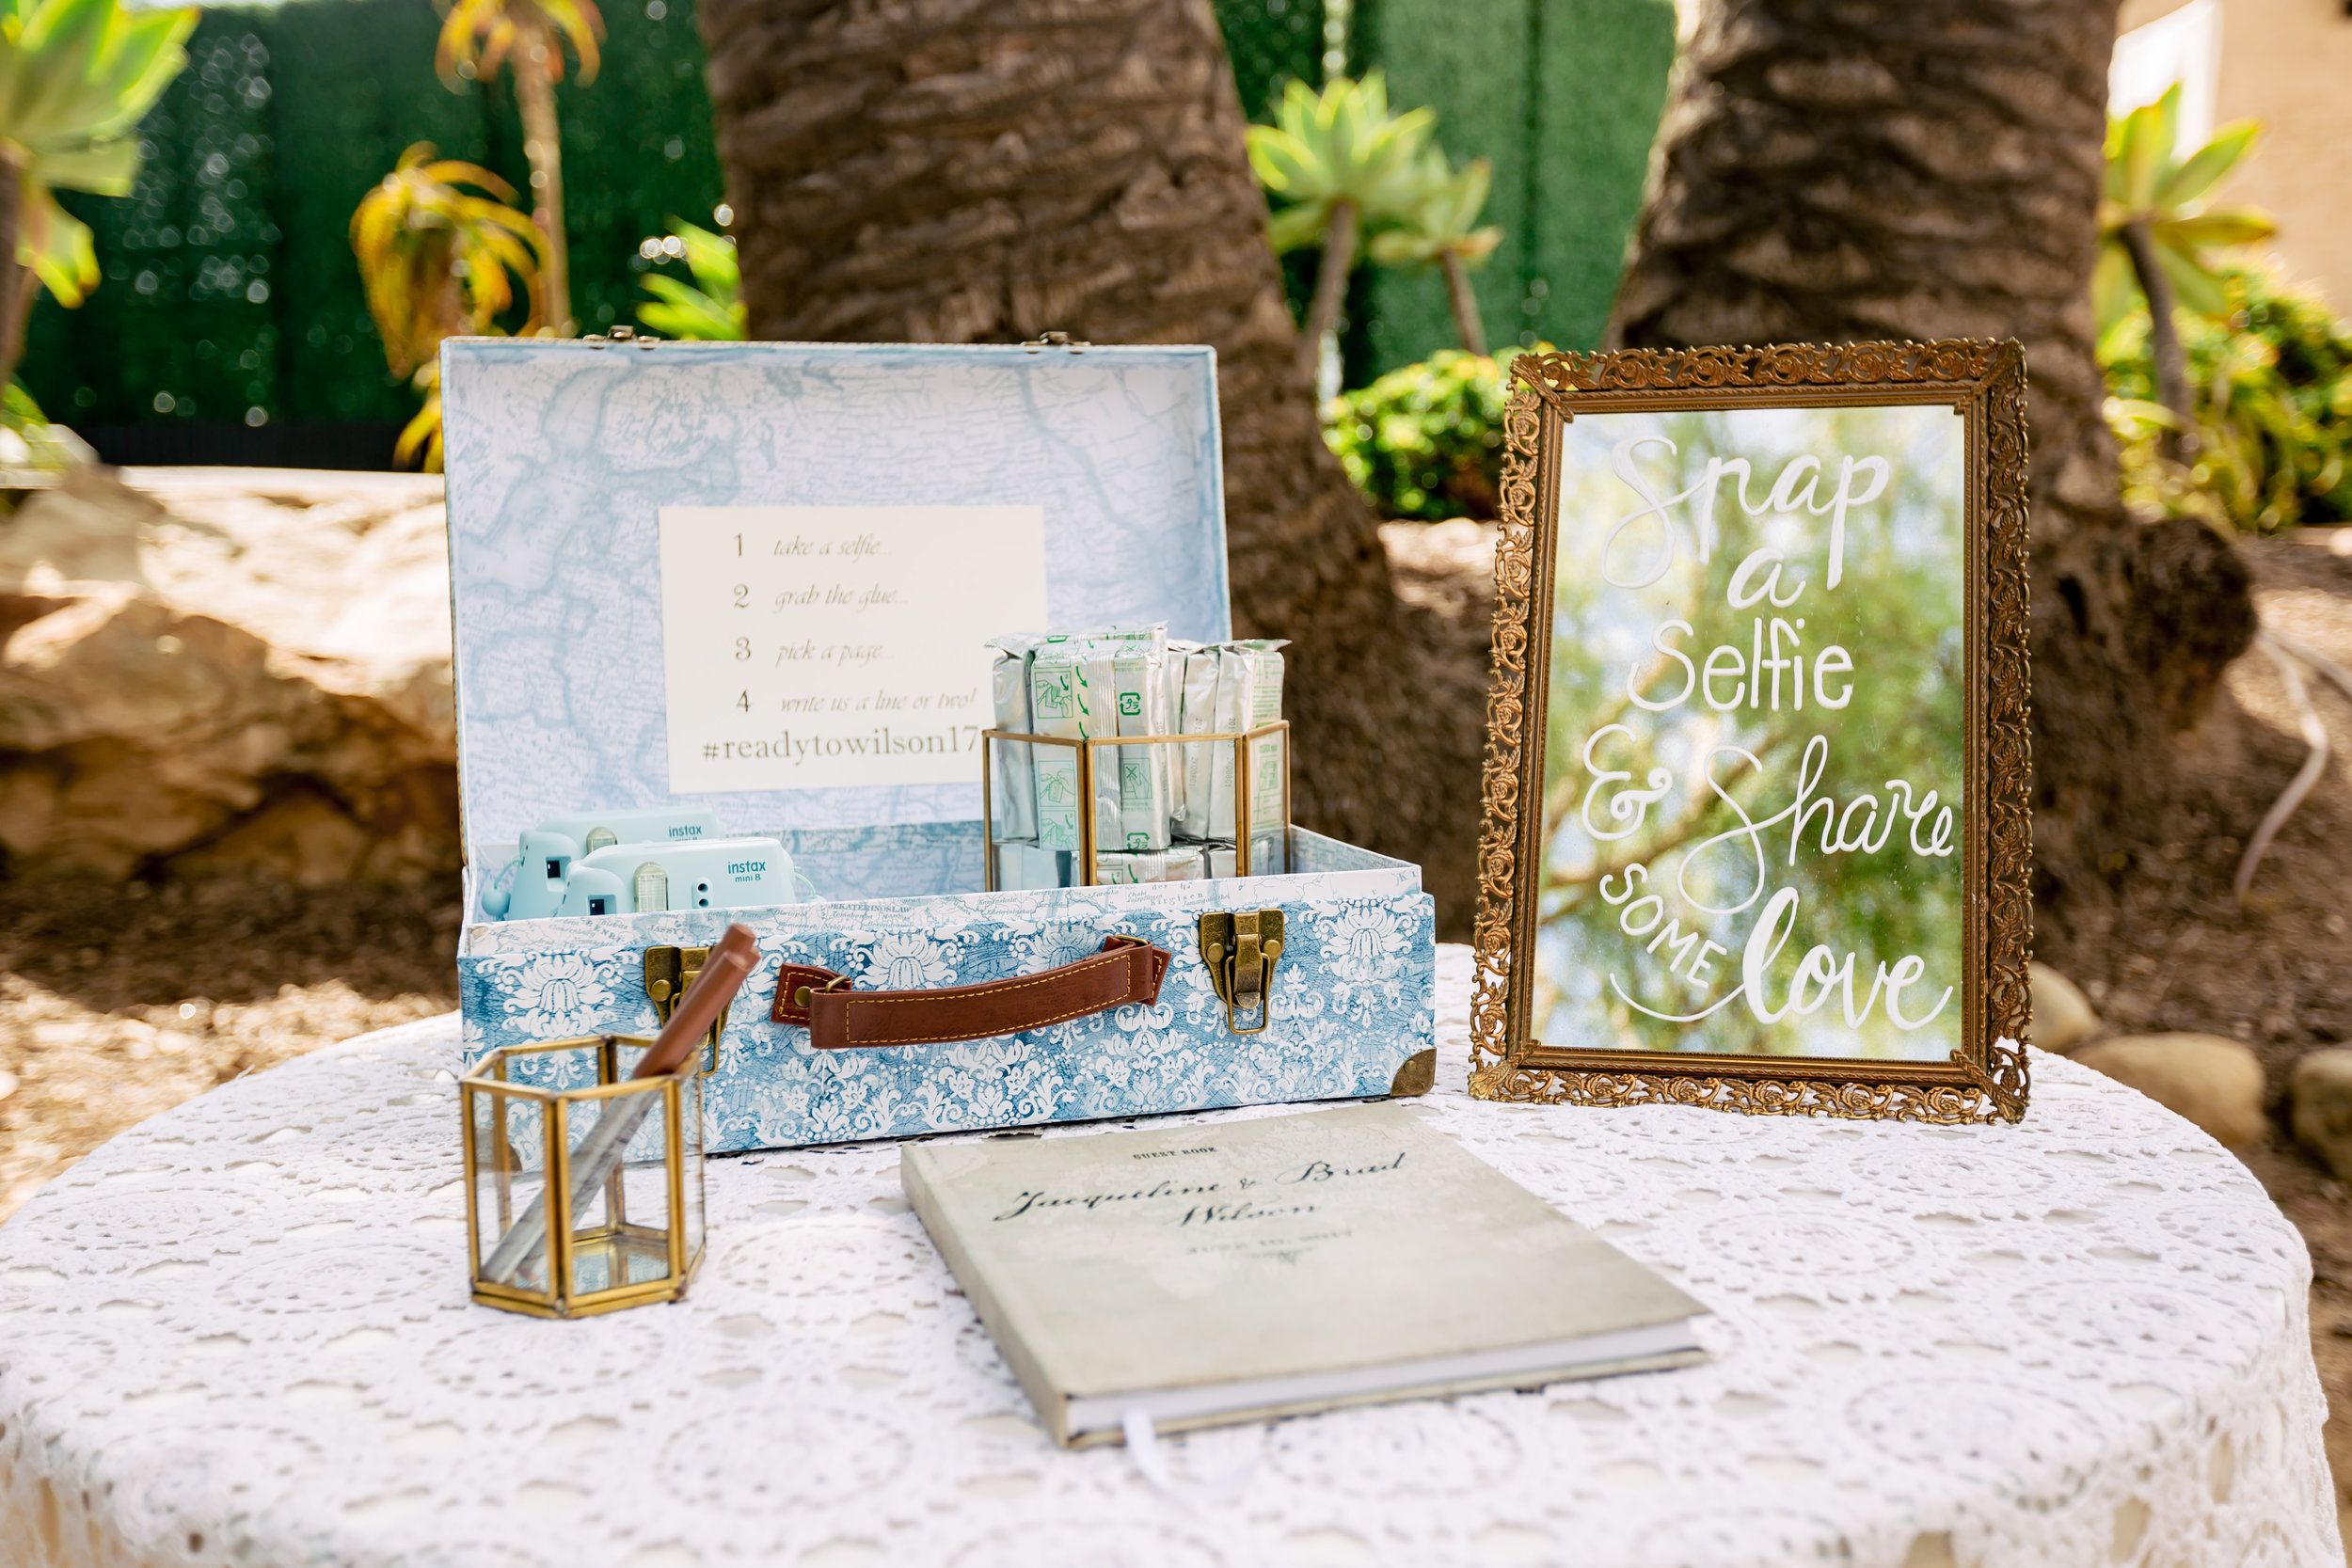 www.santabarbarawedding.com | Rewind Photography | Events by M and M | Santa Barbara Historical Museum | Photo Guest Book